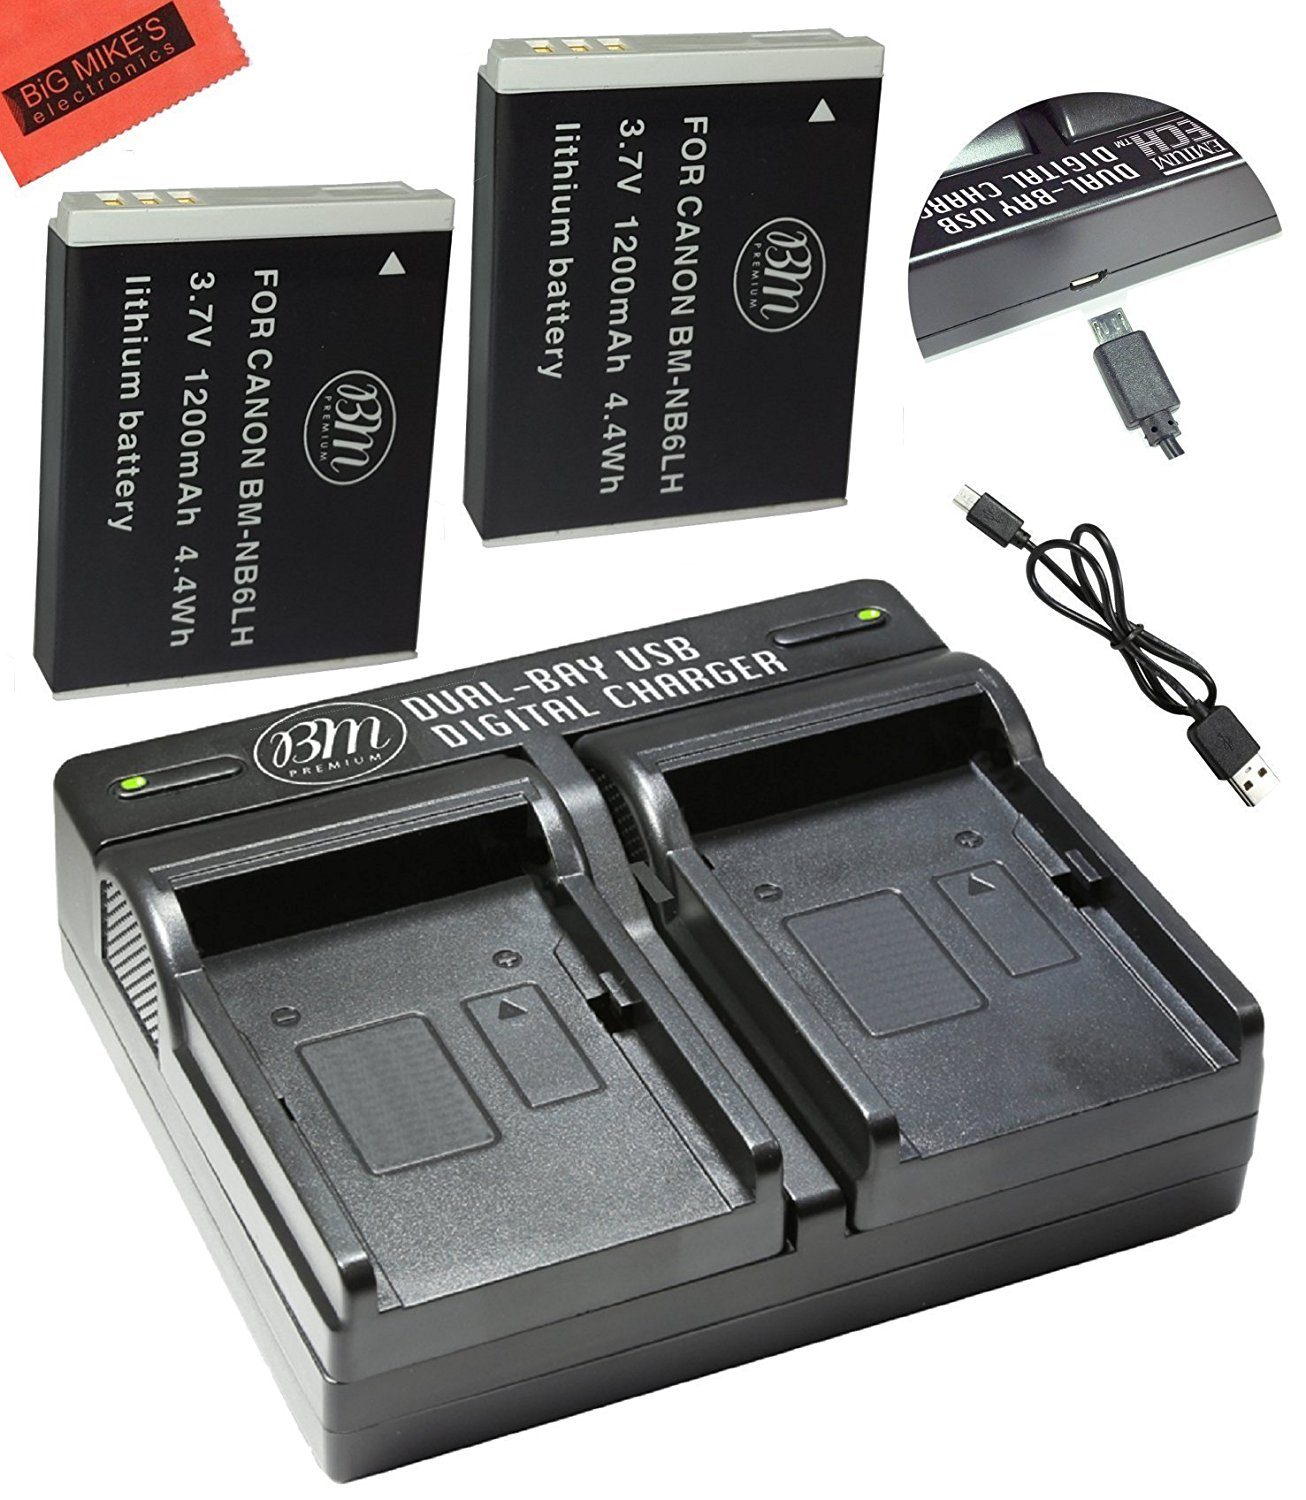 BM Premium 2 Pack of NB6L NB6LH Batteries and Dual Battery